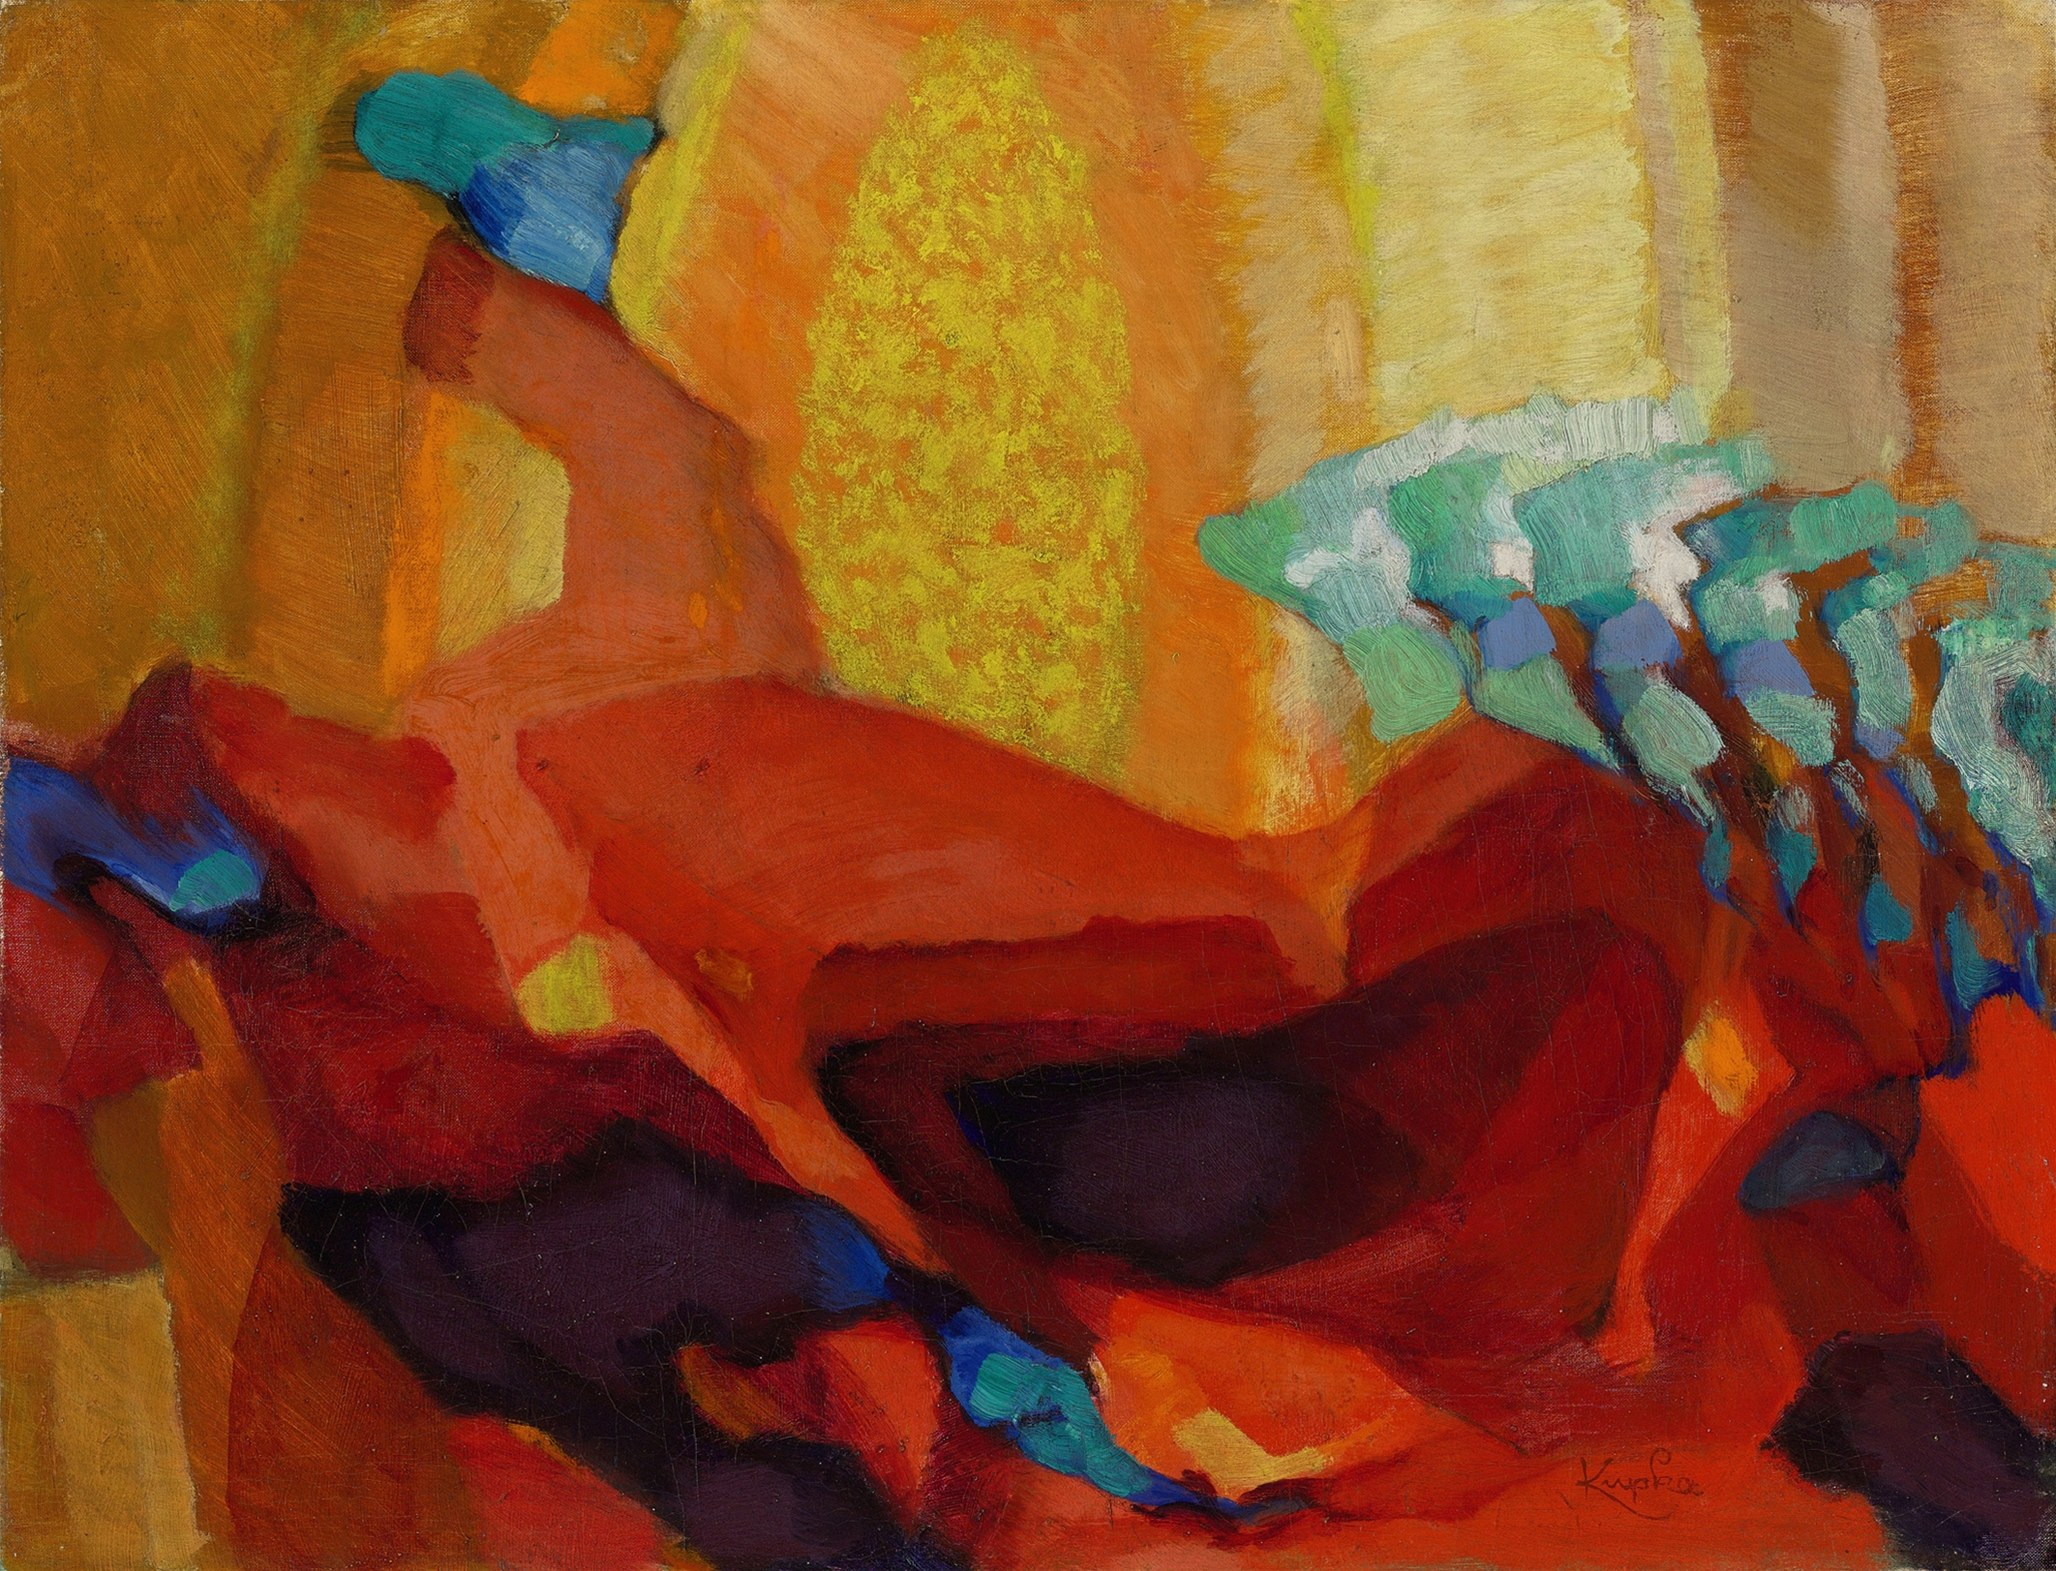 Movement, Recently sold at auction for £1,497,250.